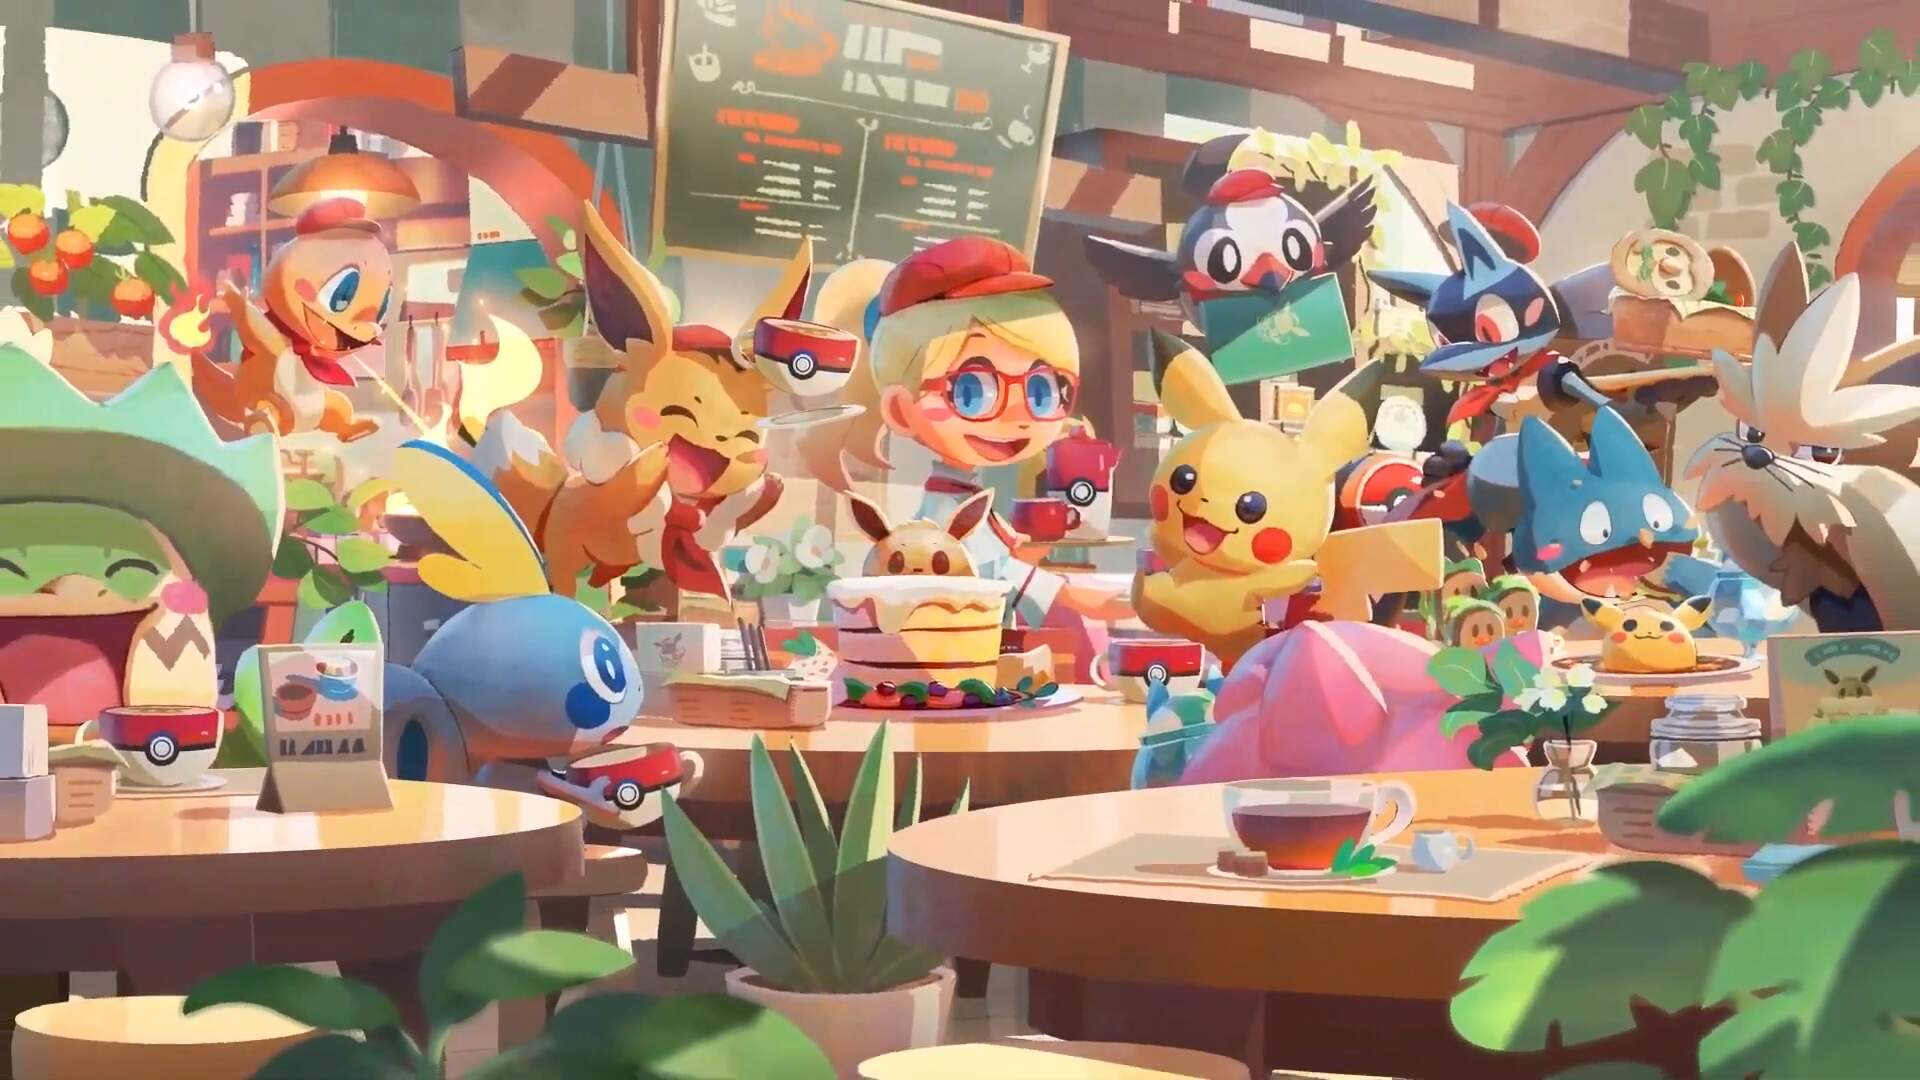 Pokemon Cafe Mix Is One Part Coffee Shop Sim, Several Parts Tsum Tsum